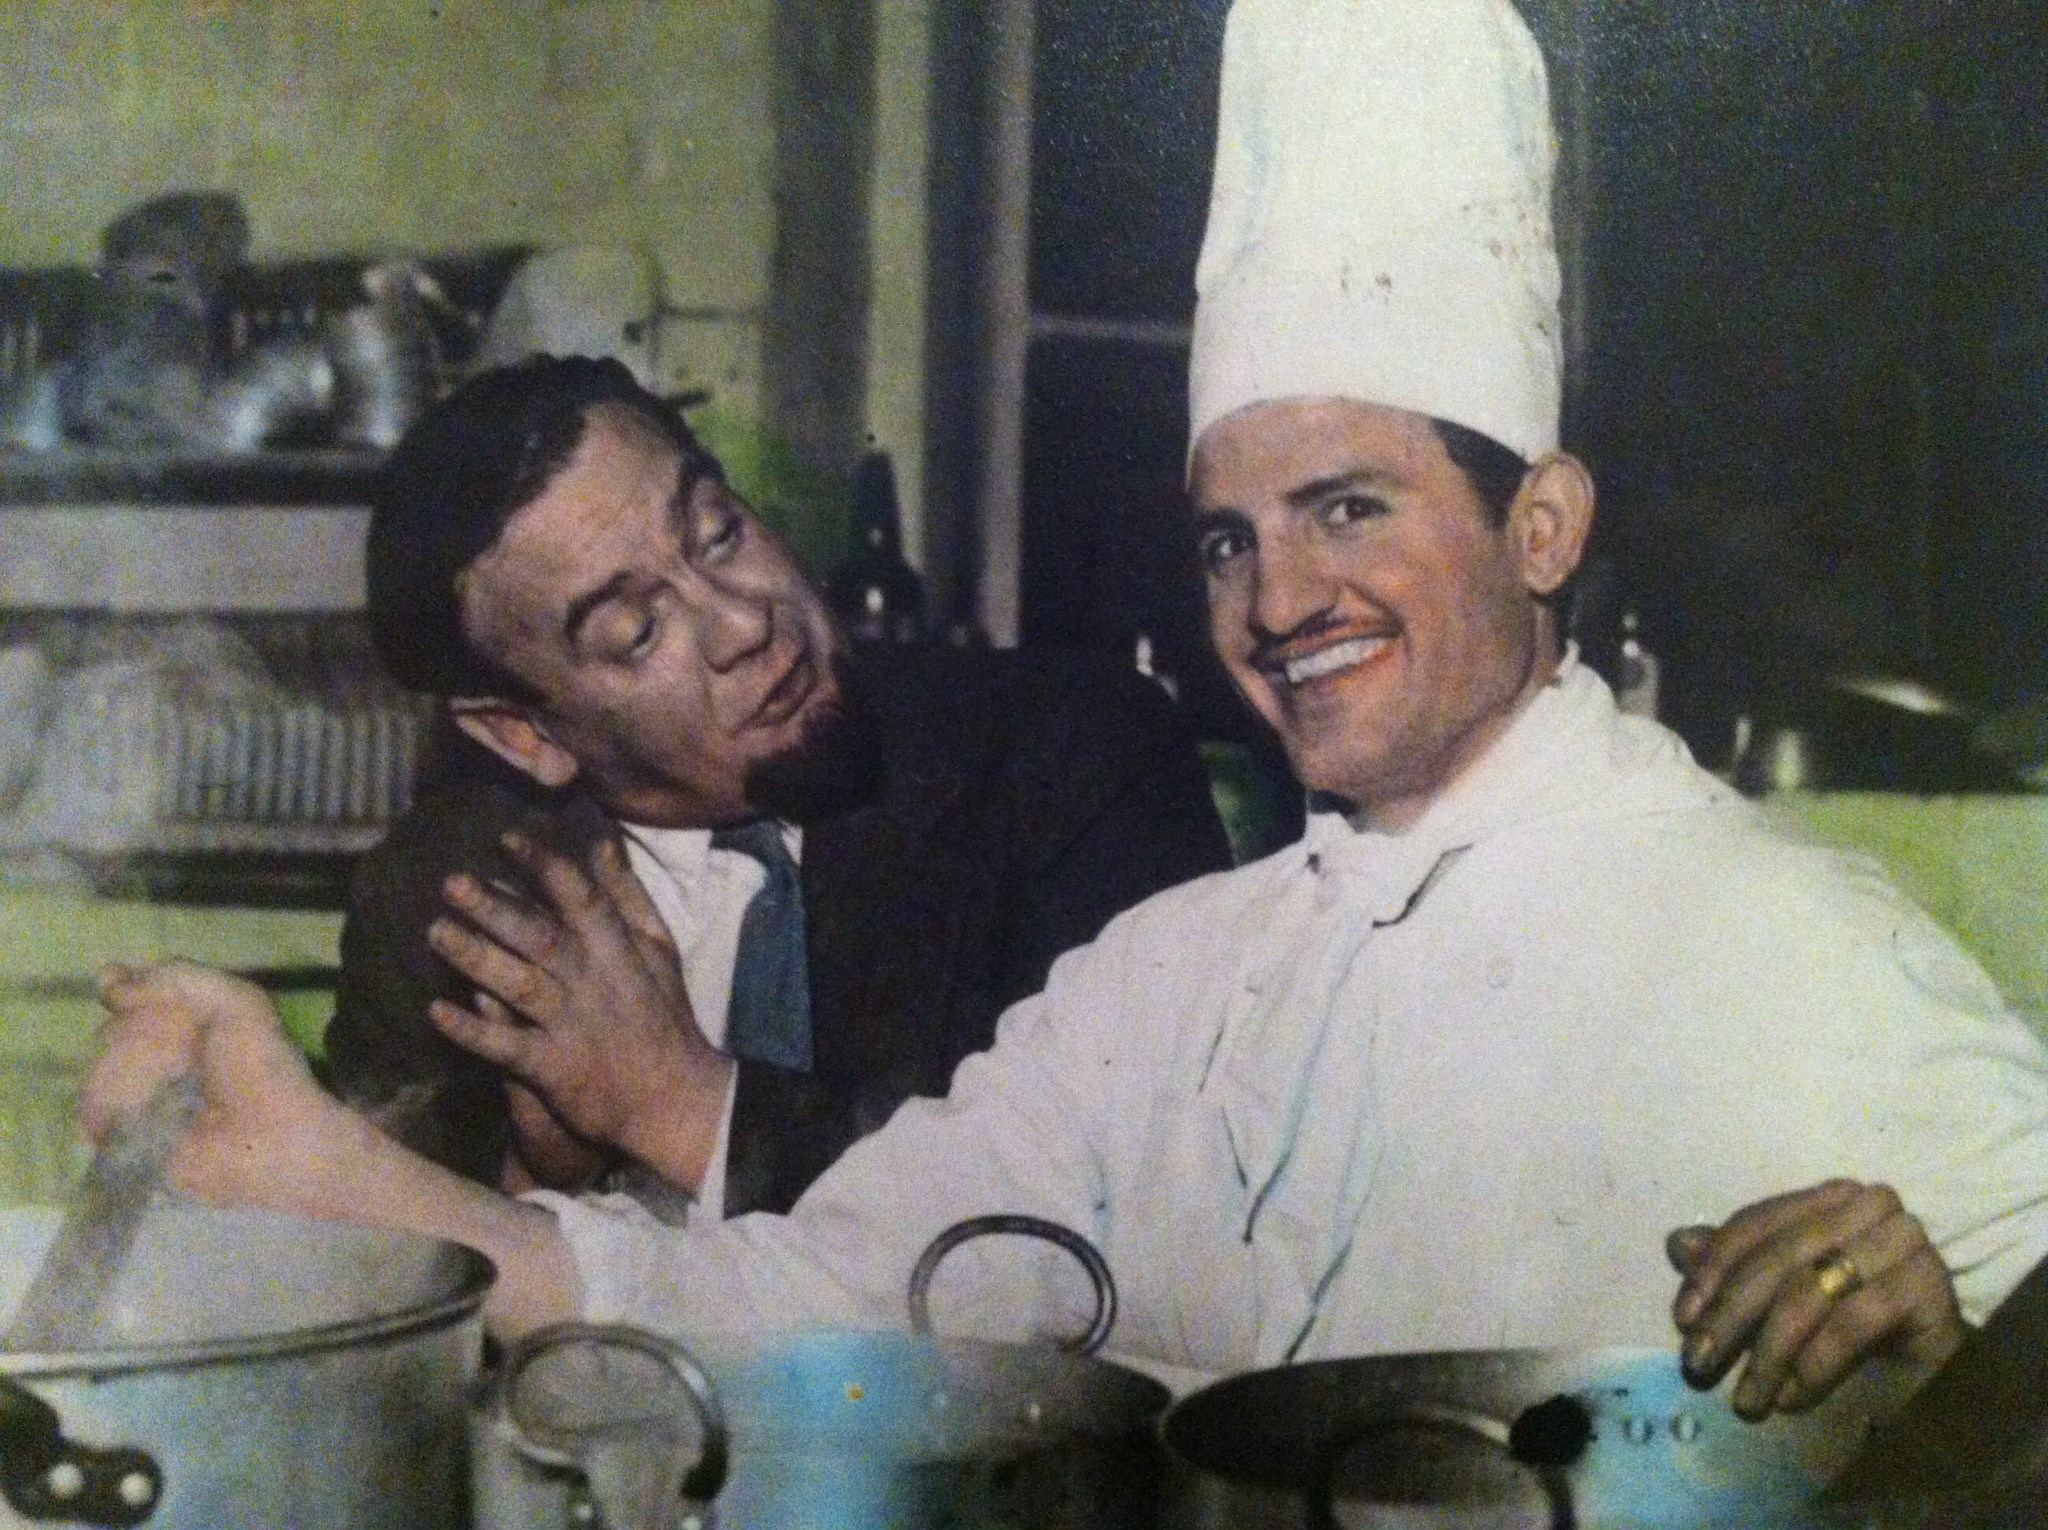 Pappou when he was a chef at Olympia restaurant in Birmingham. Taken in the 50's.